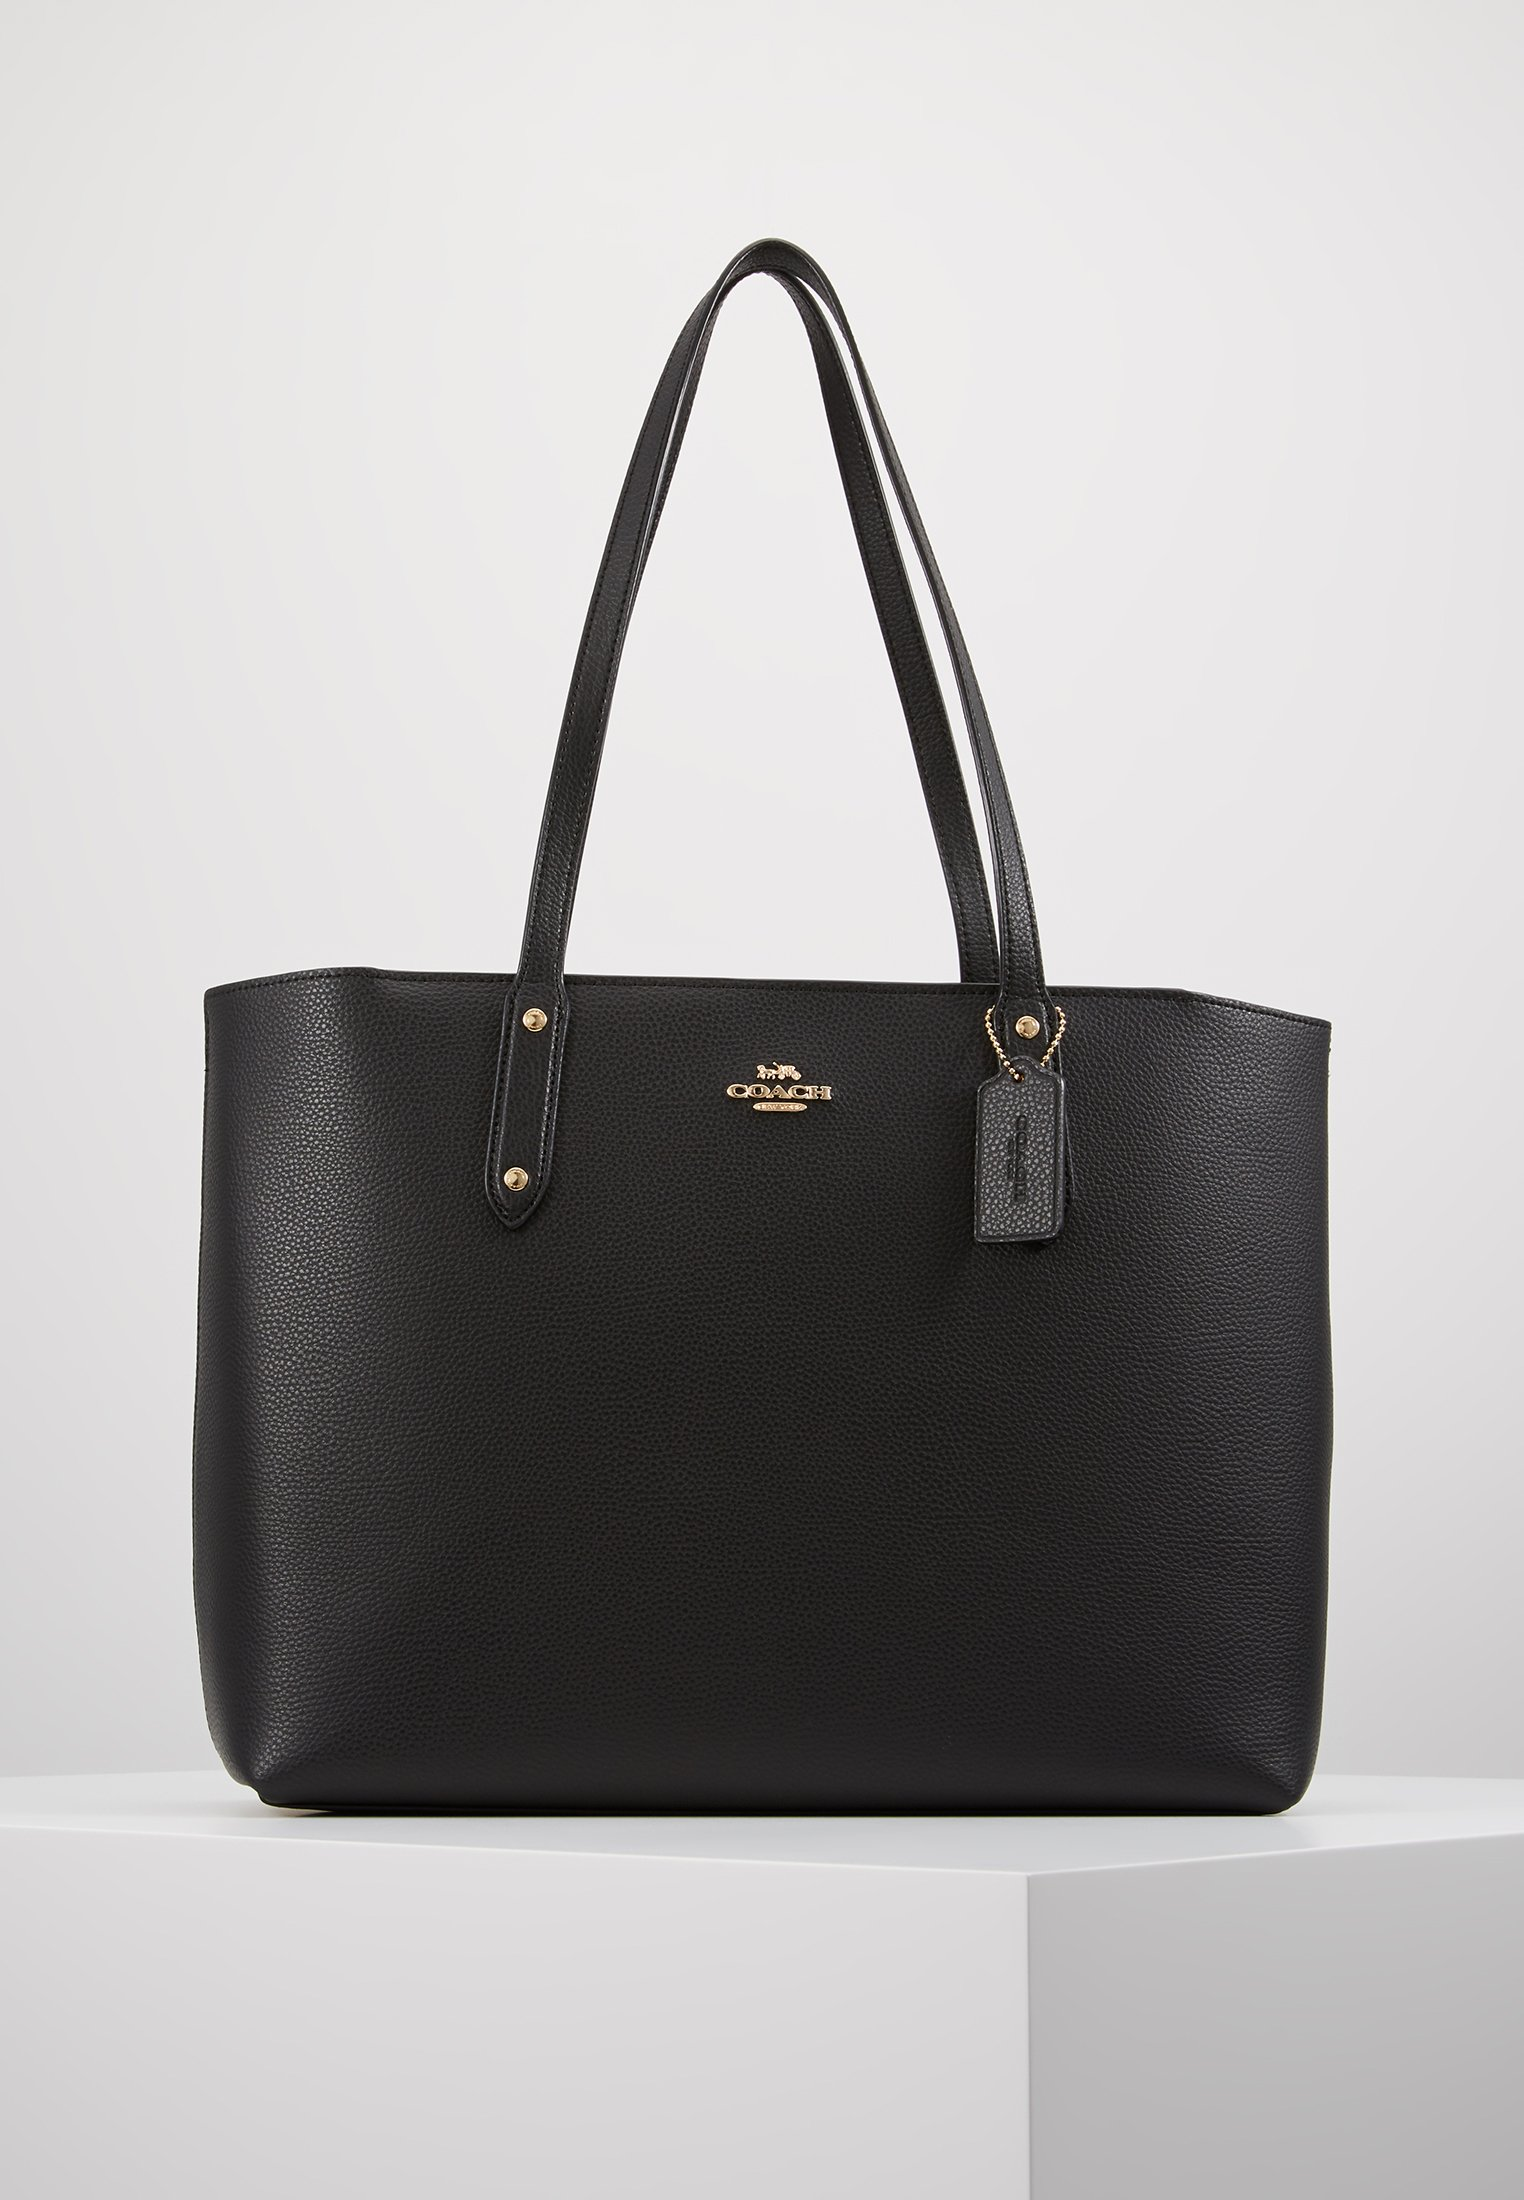 Perfect Fast Express Accessories Coach CENTRAL TOTE WITH ZIP Tote bag black kbiju1oGT mwJFnEky6